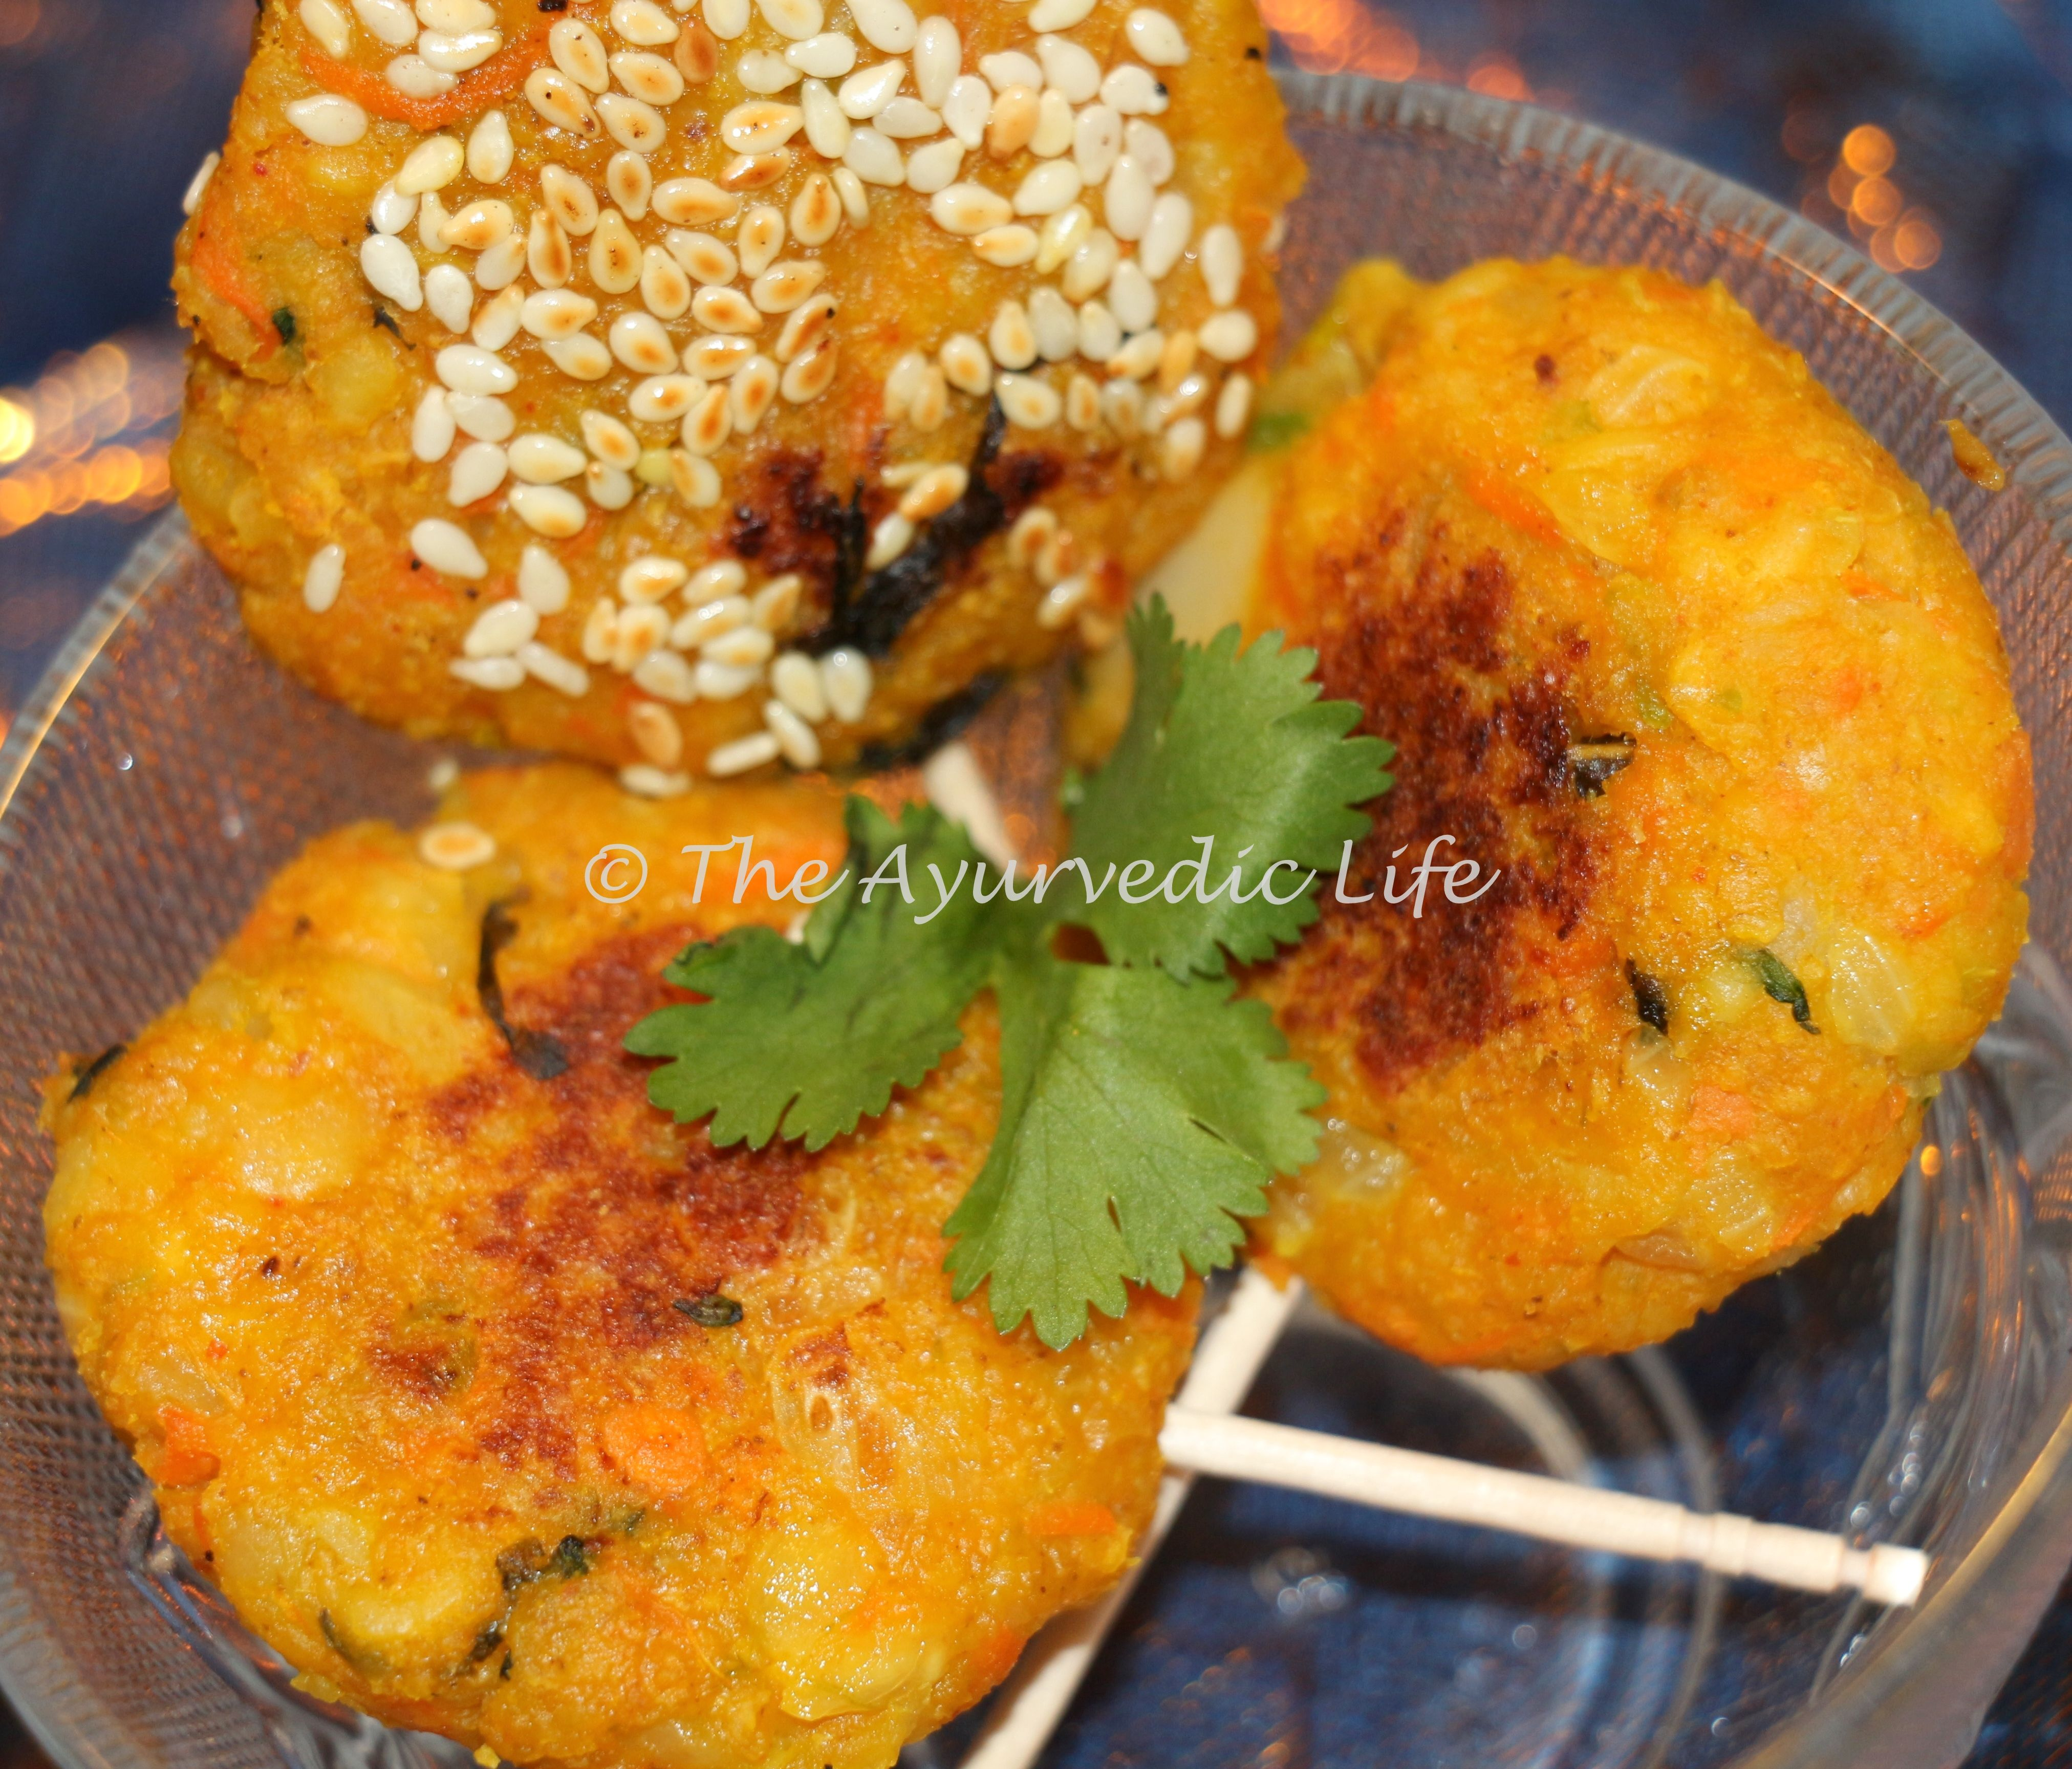 Oats lollipop food recipes pinterest choose wisely lunchbox lunches forumfinder Gallery